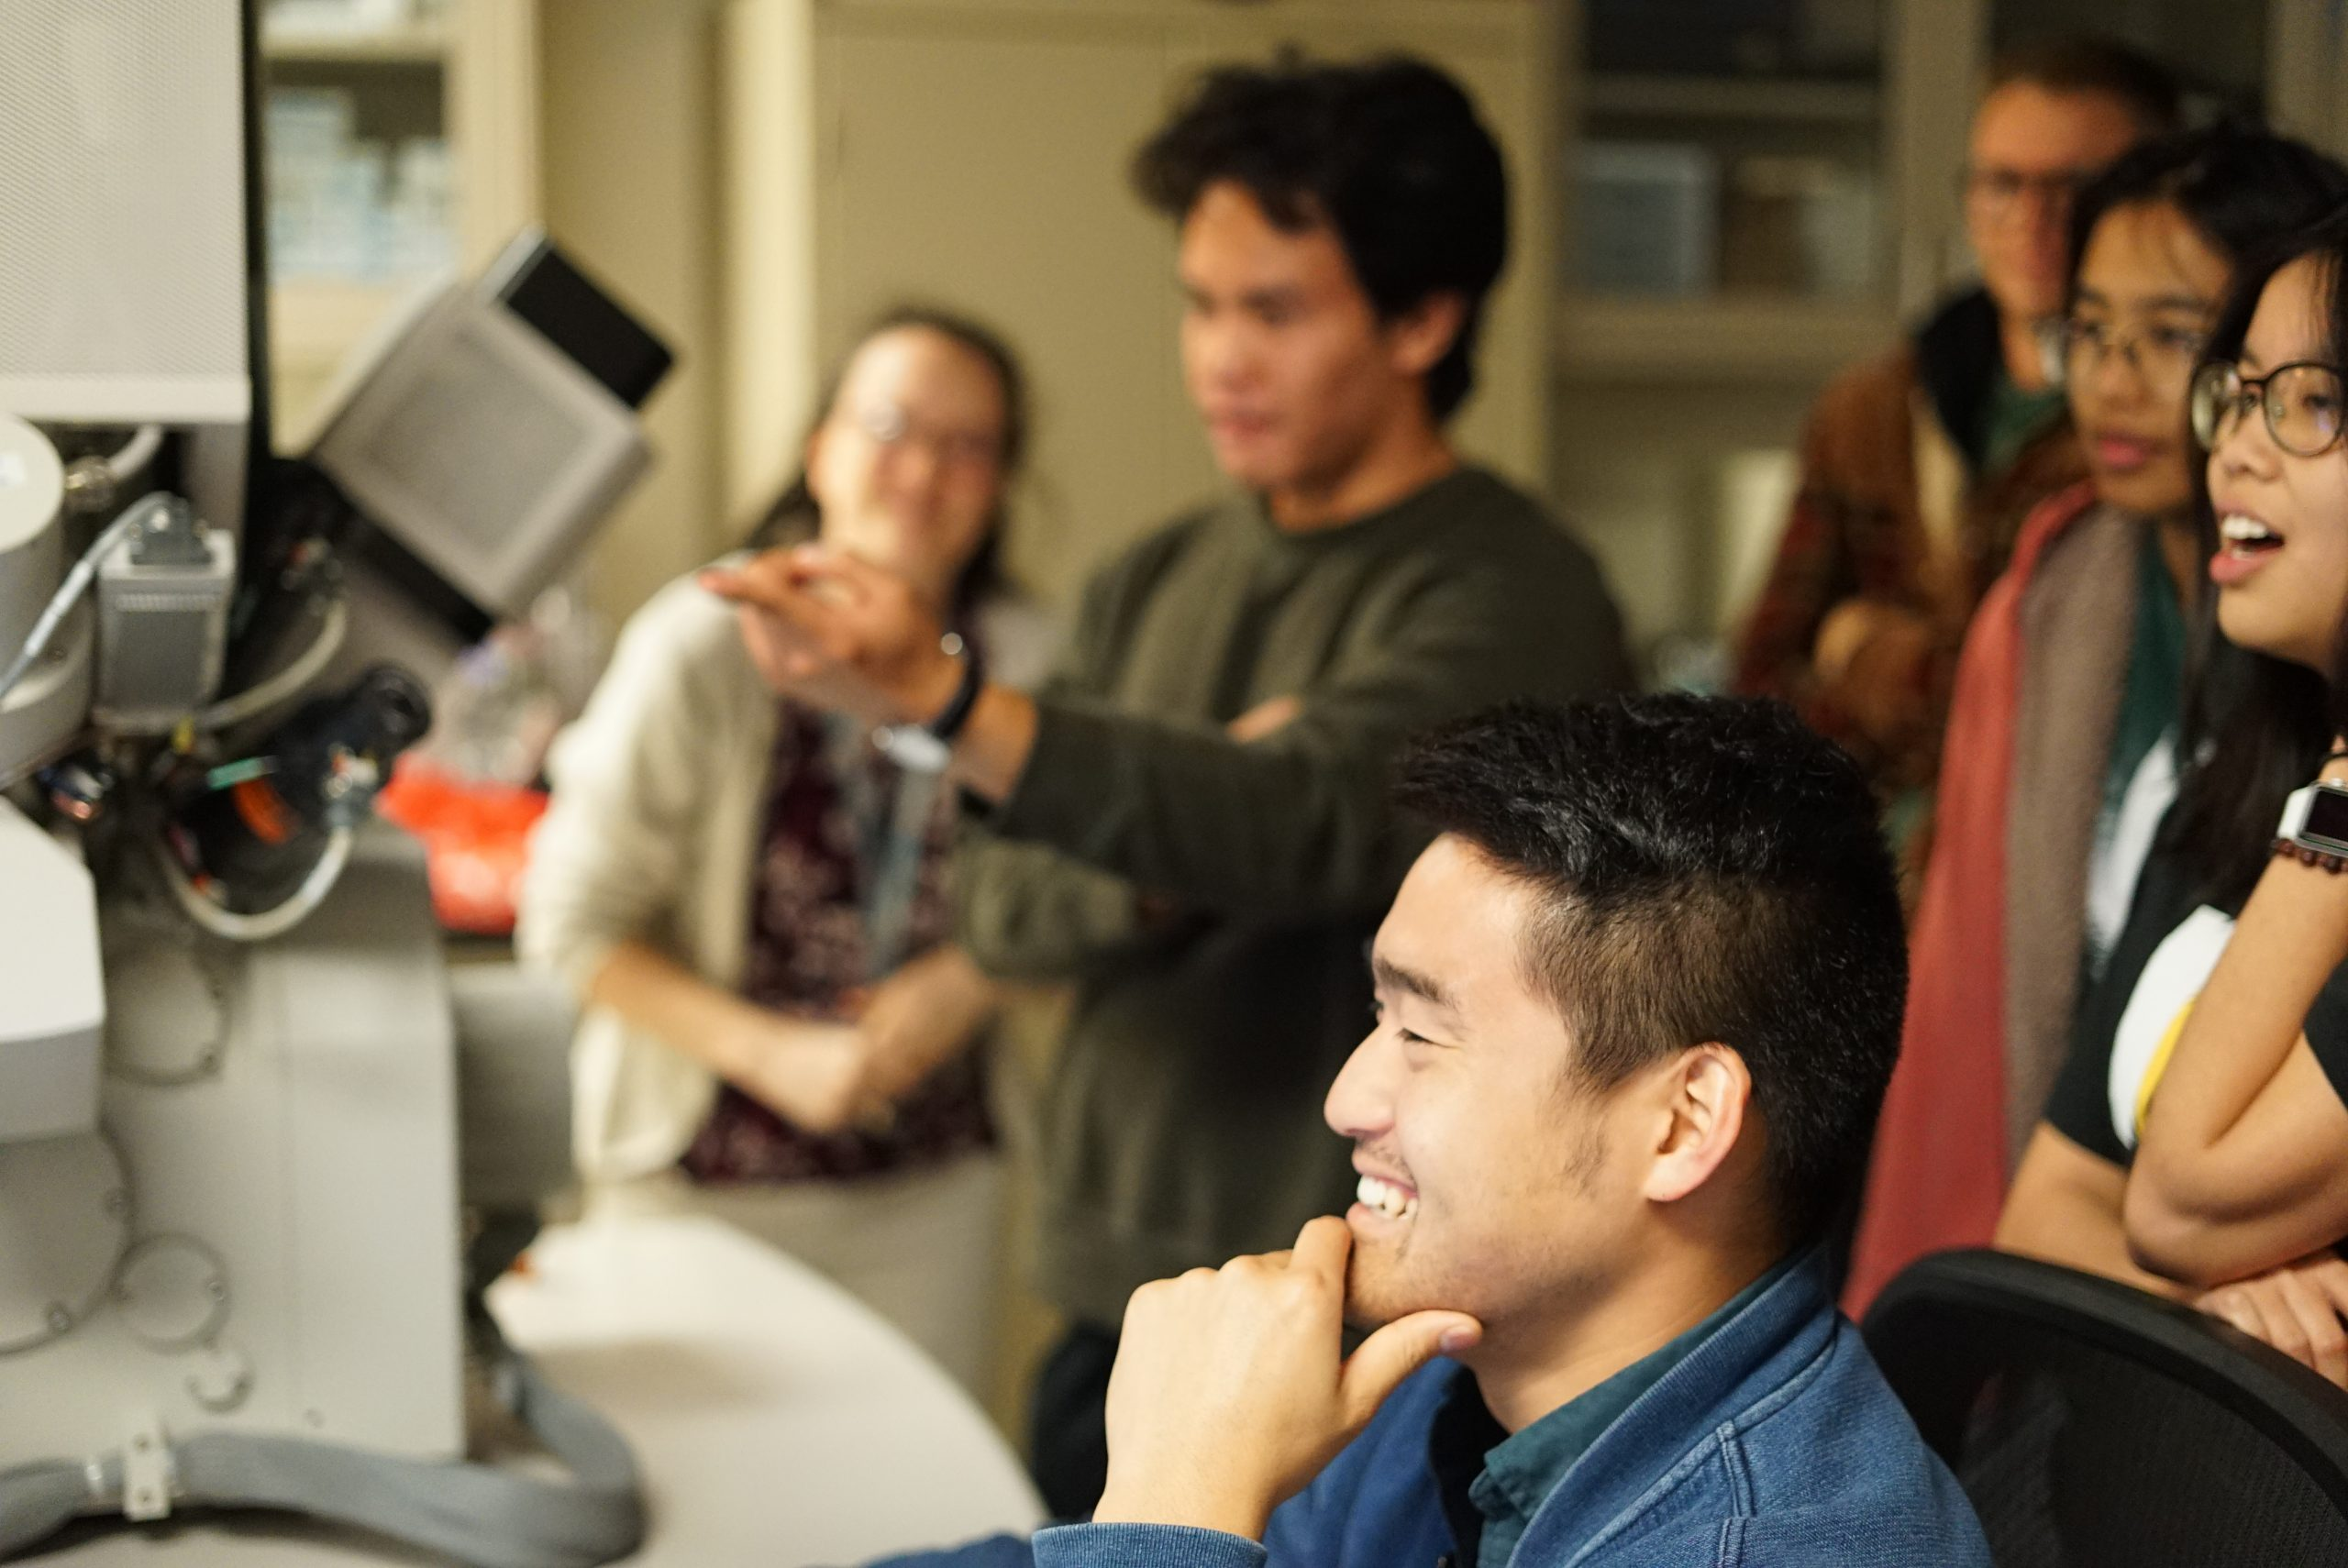 Students and Dr. Kenta Ohtaki, formerly a postdoc, working at the Focused Ion Beam instrument at HIGP.